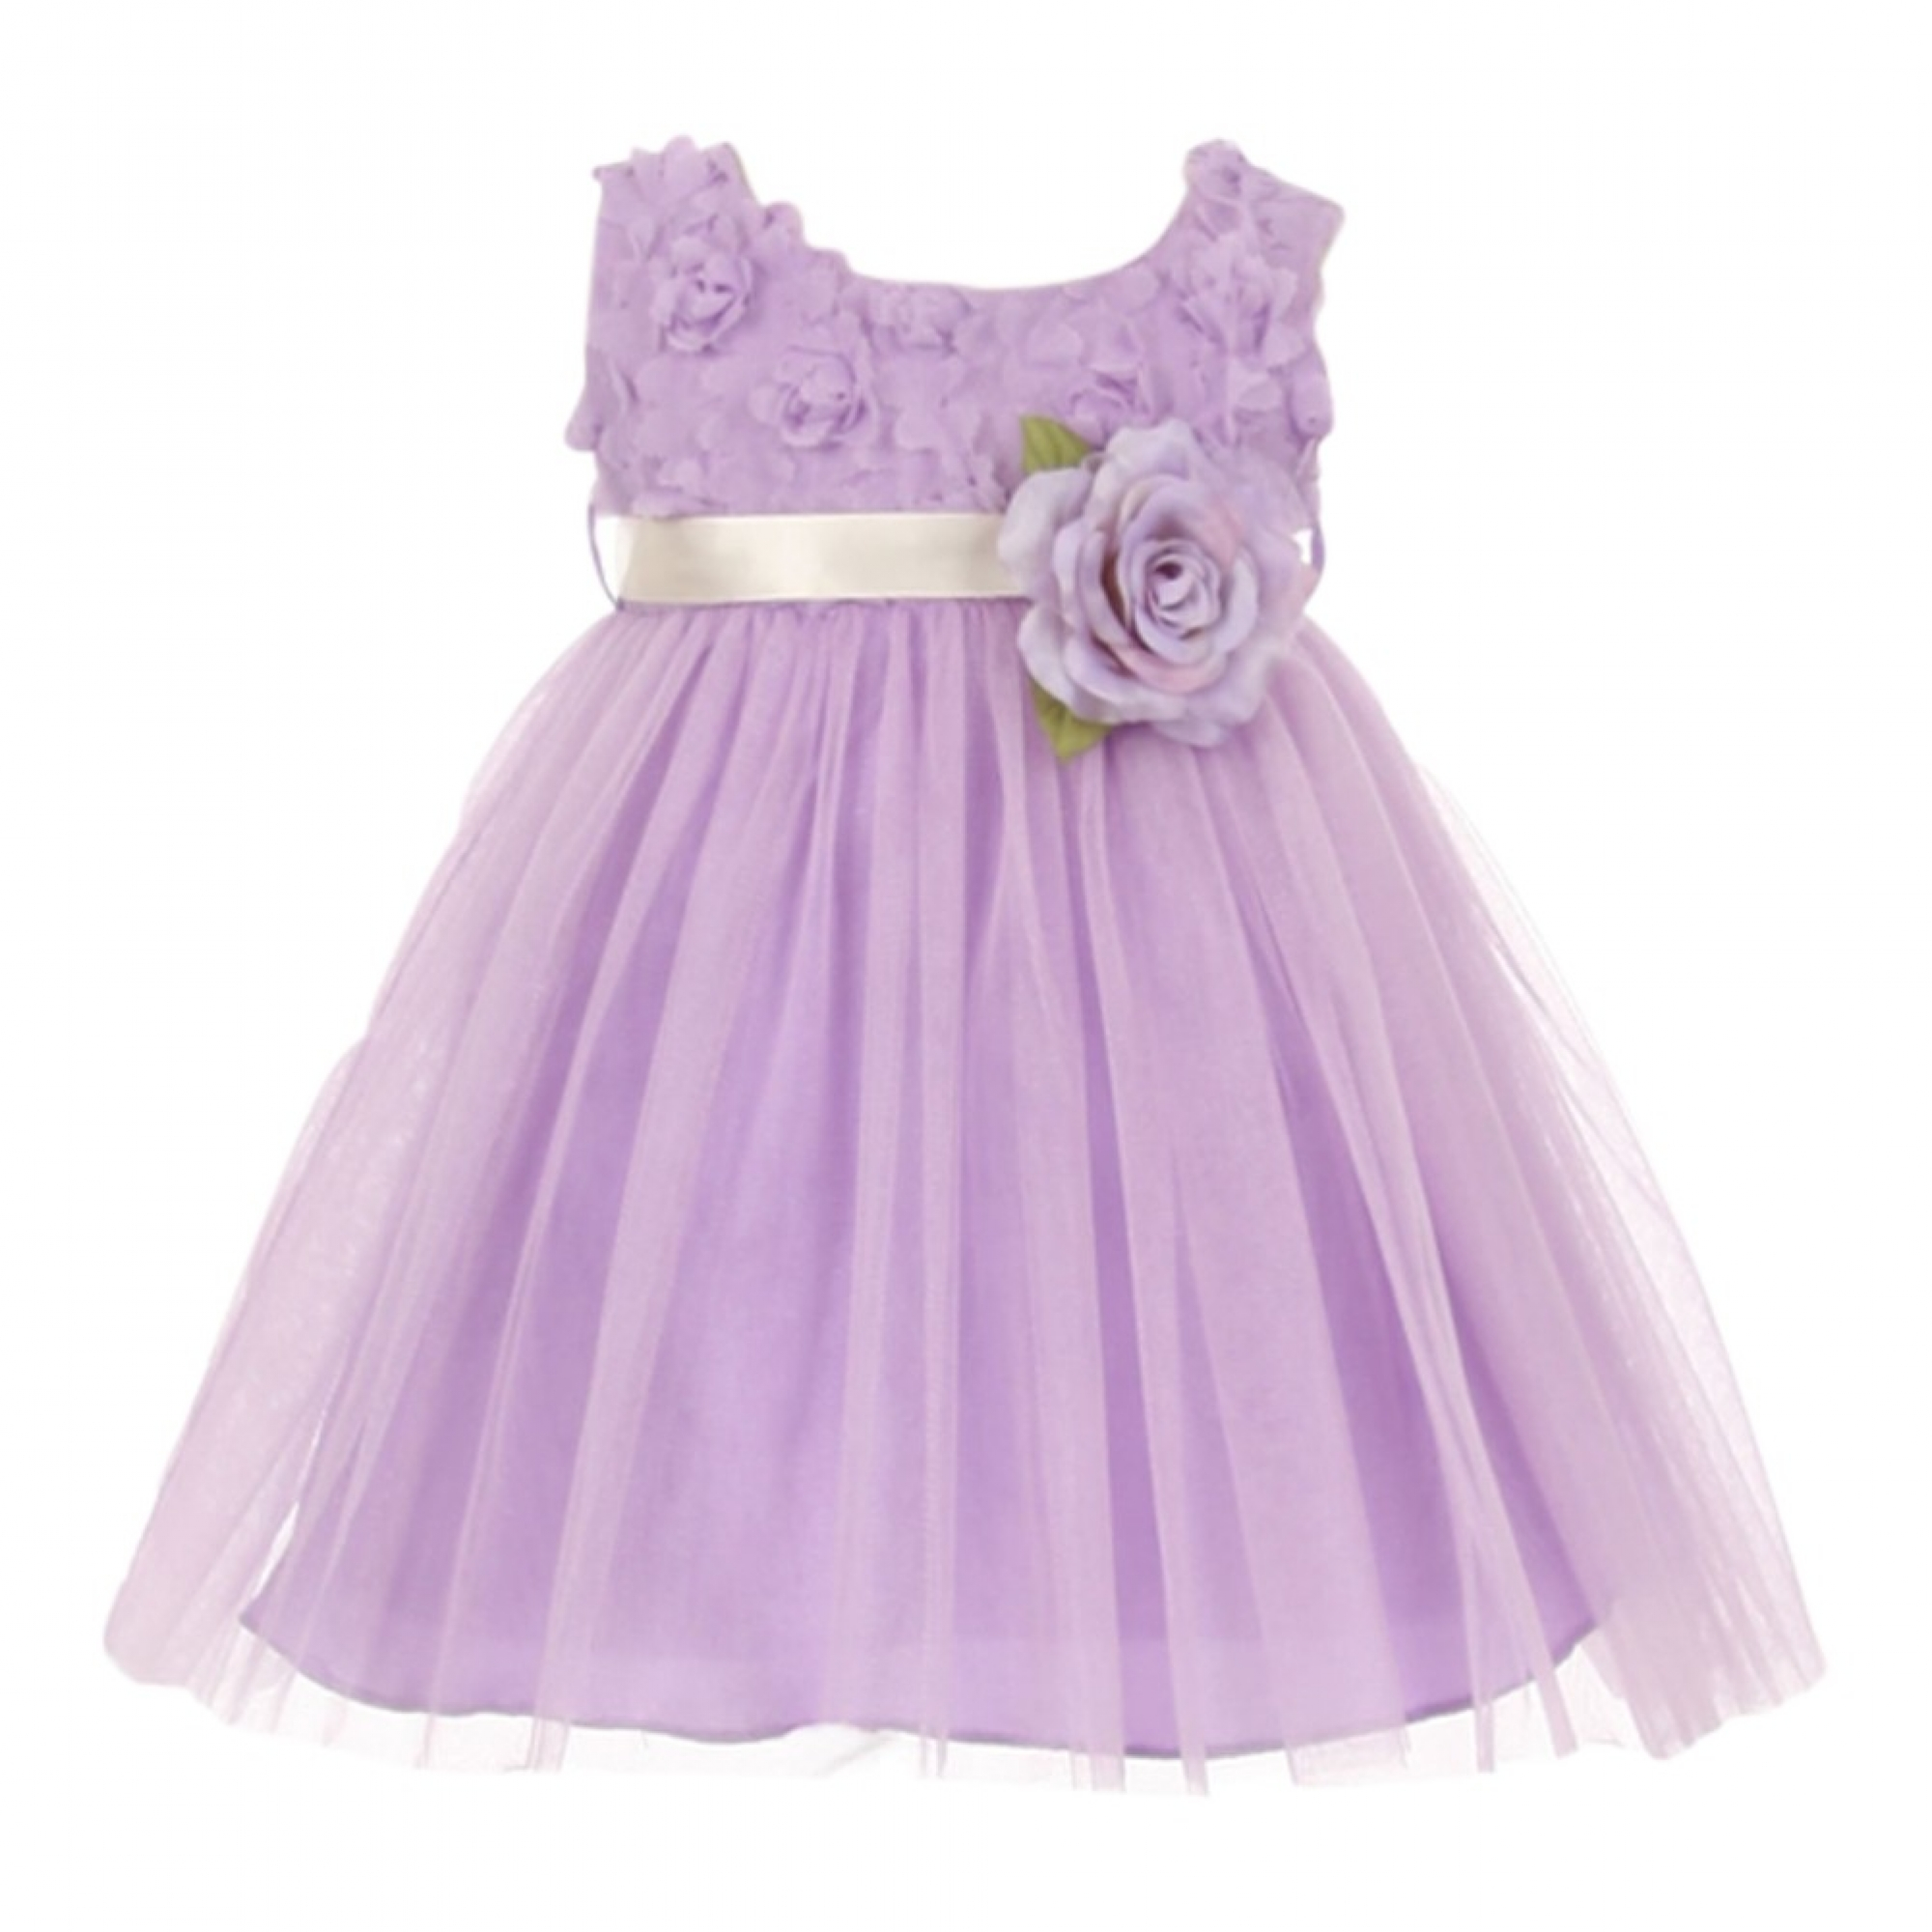 Baby Flower Girl Shoes Newest and Cutest Baby Clothing Collection